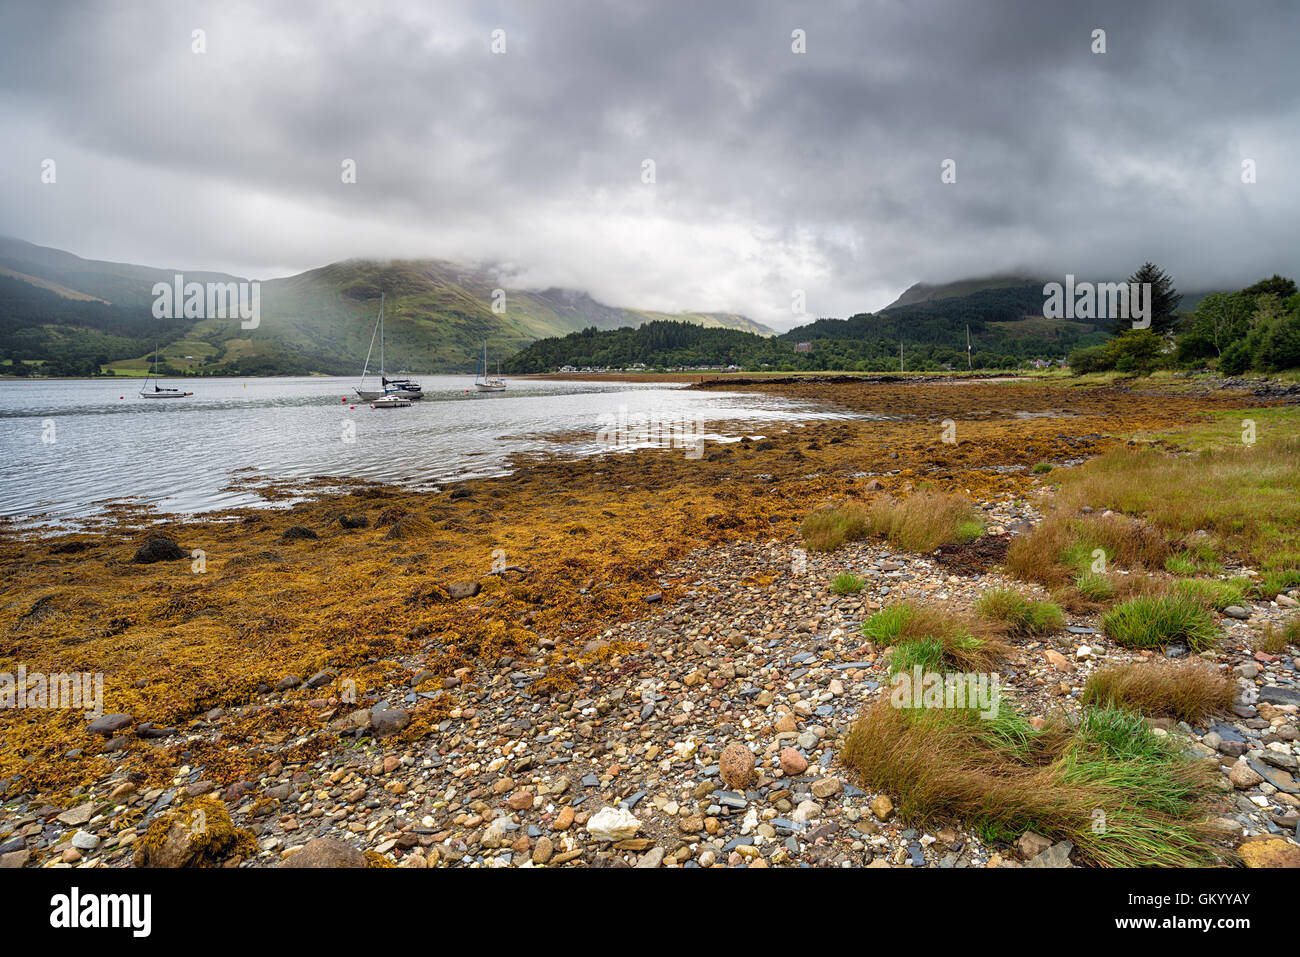 The shores of Loch Leven, looking towards the village of Glencoe - Stock Image